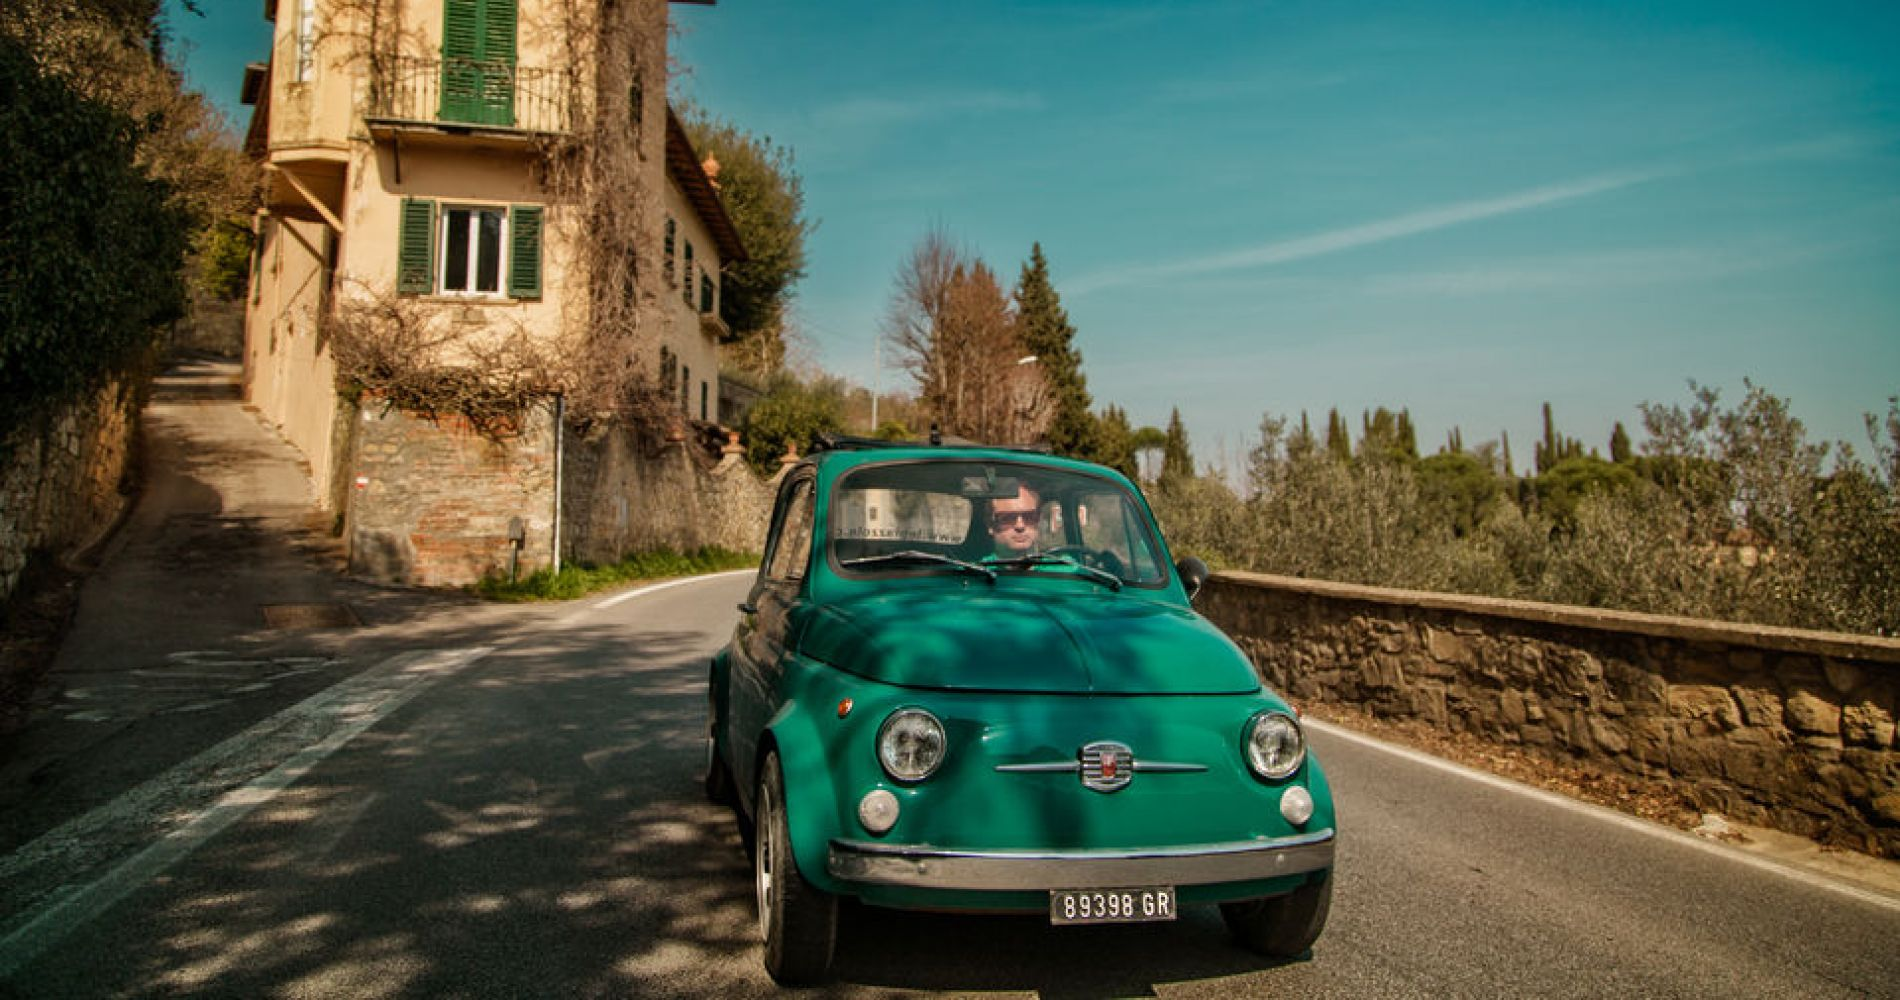 Florence Wine Tasting and Tuscan Lunch in a Vintage Fiat for Two